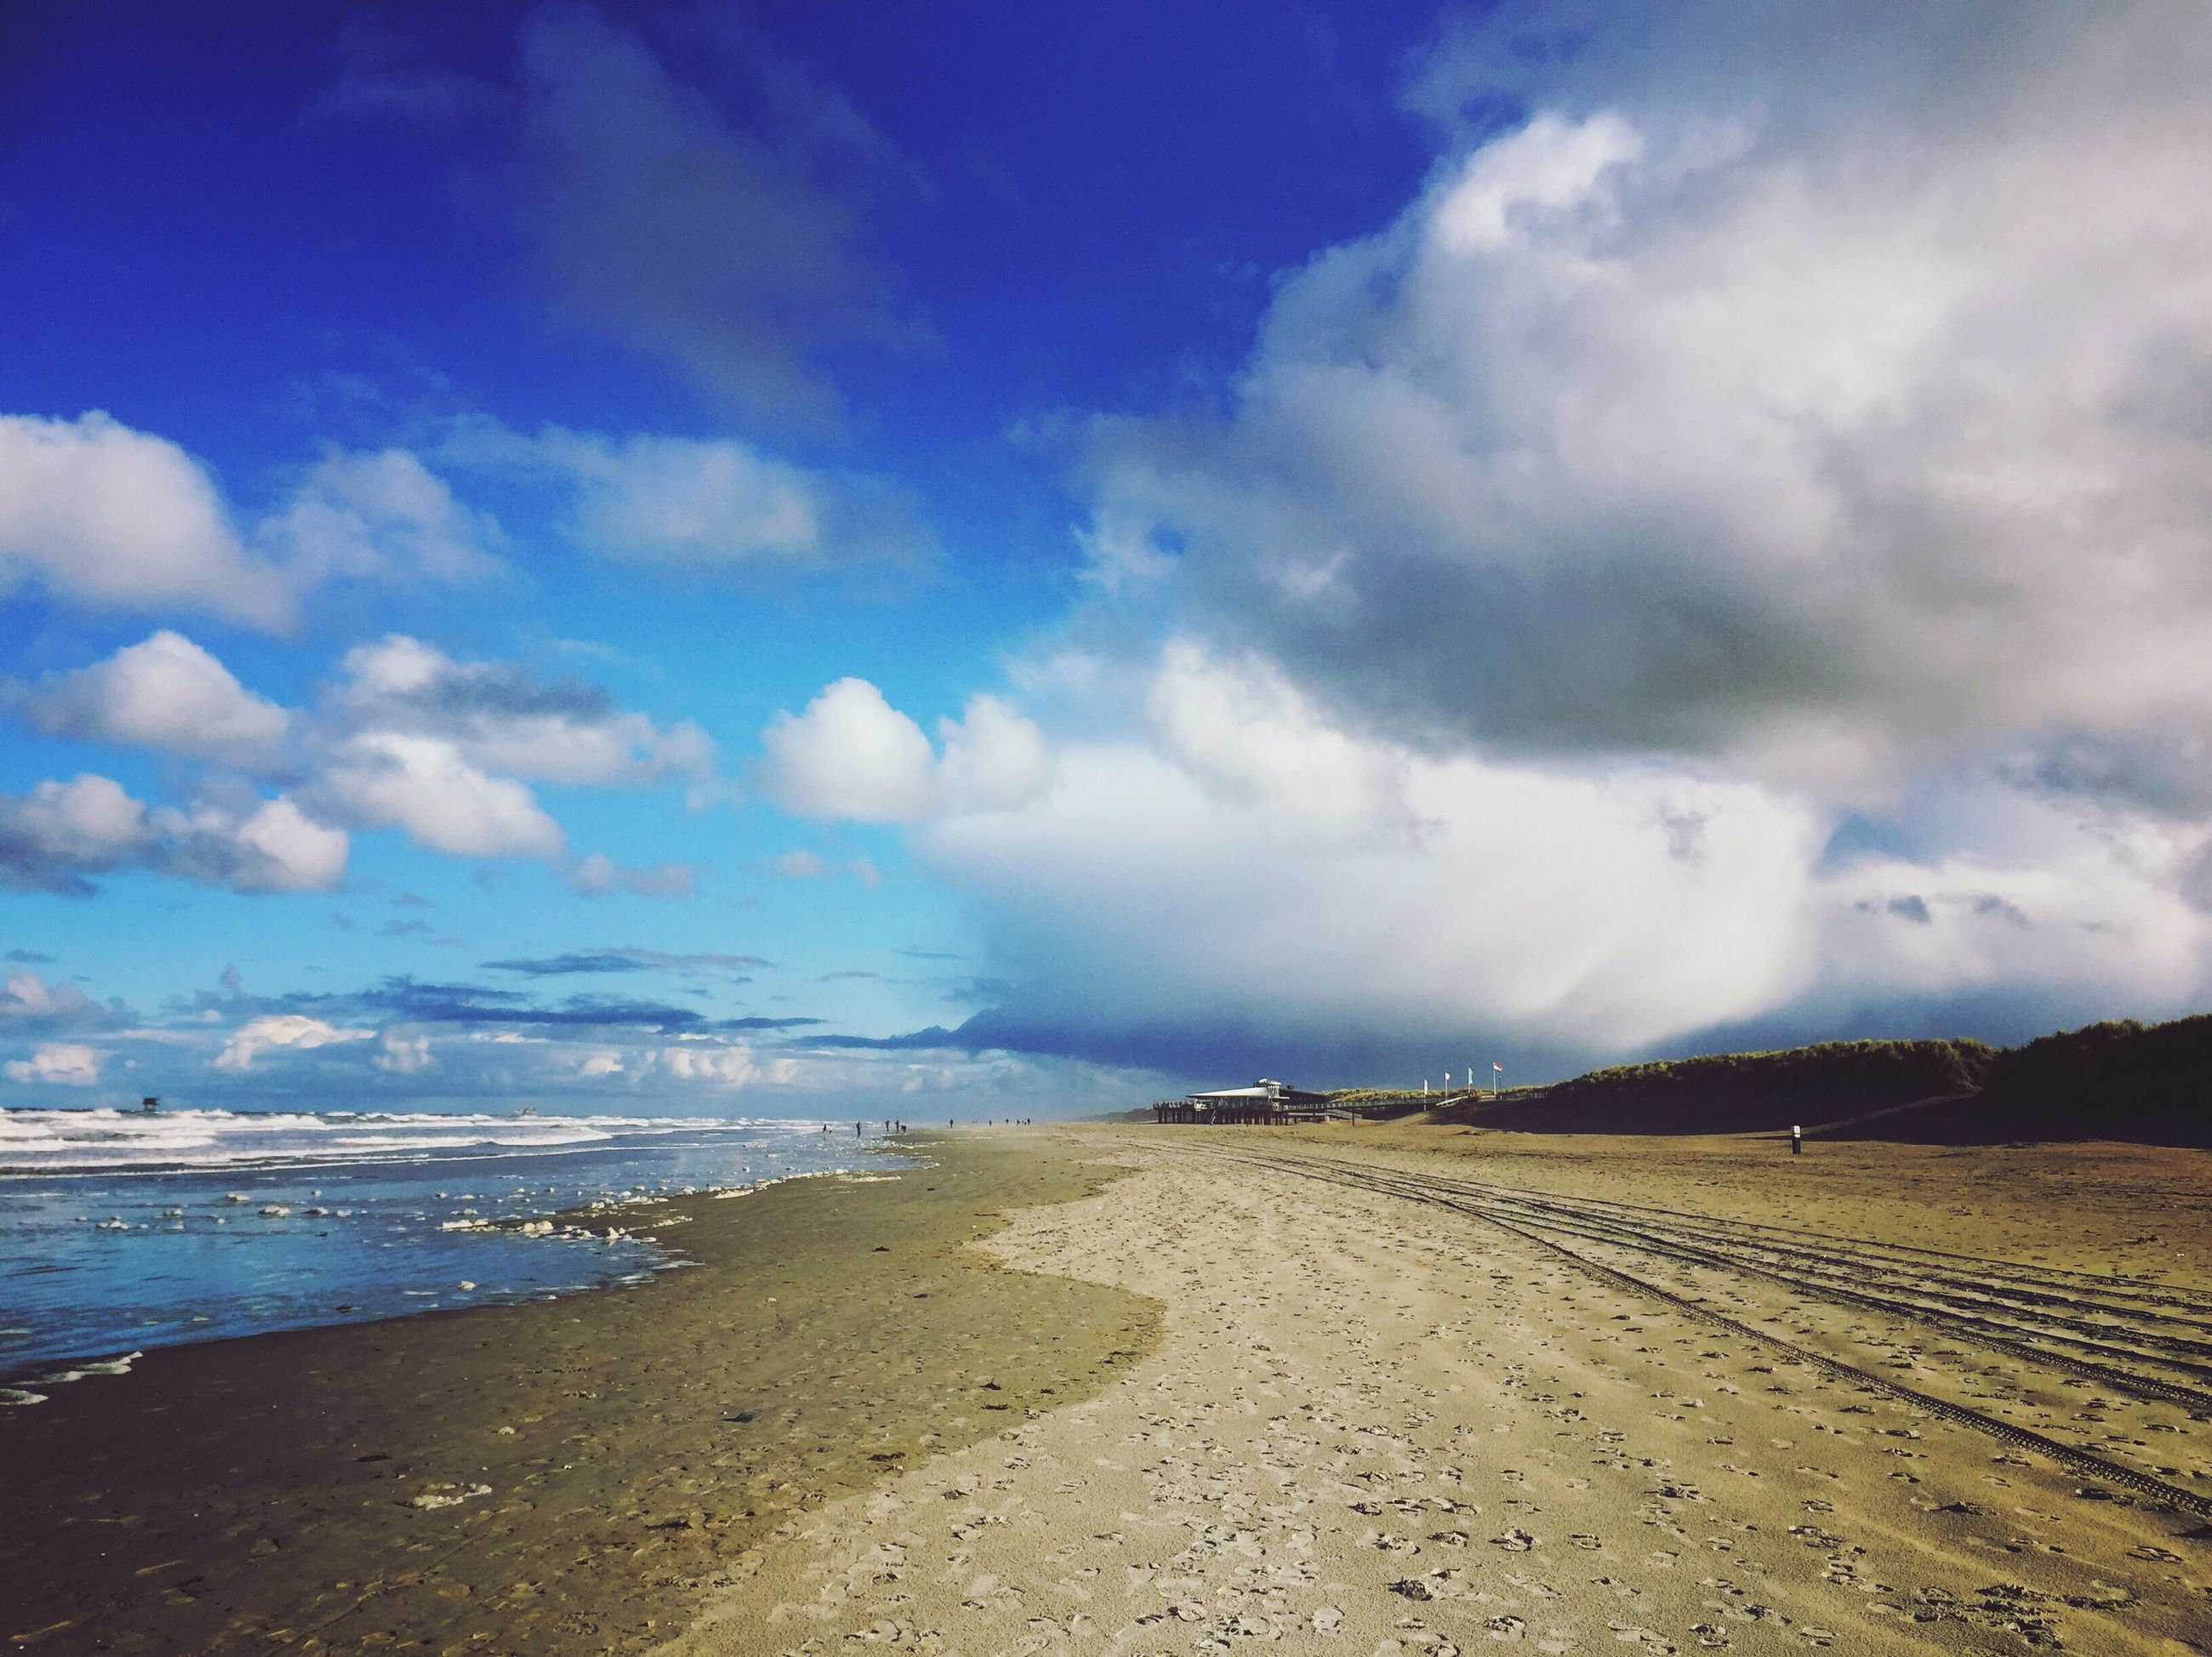 sea, beach, sky, cloud - sky, sand, water, horizon over water, nature, blue, scenics, beauty in nature, tranquil scene, tranquility, no people, outdoors, day, wave